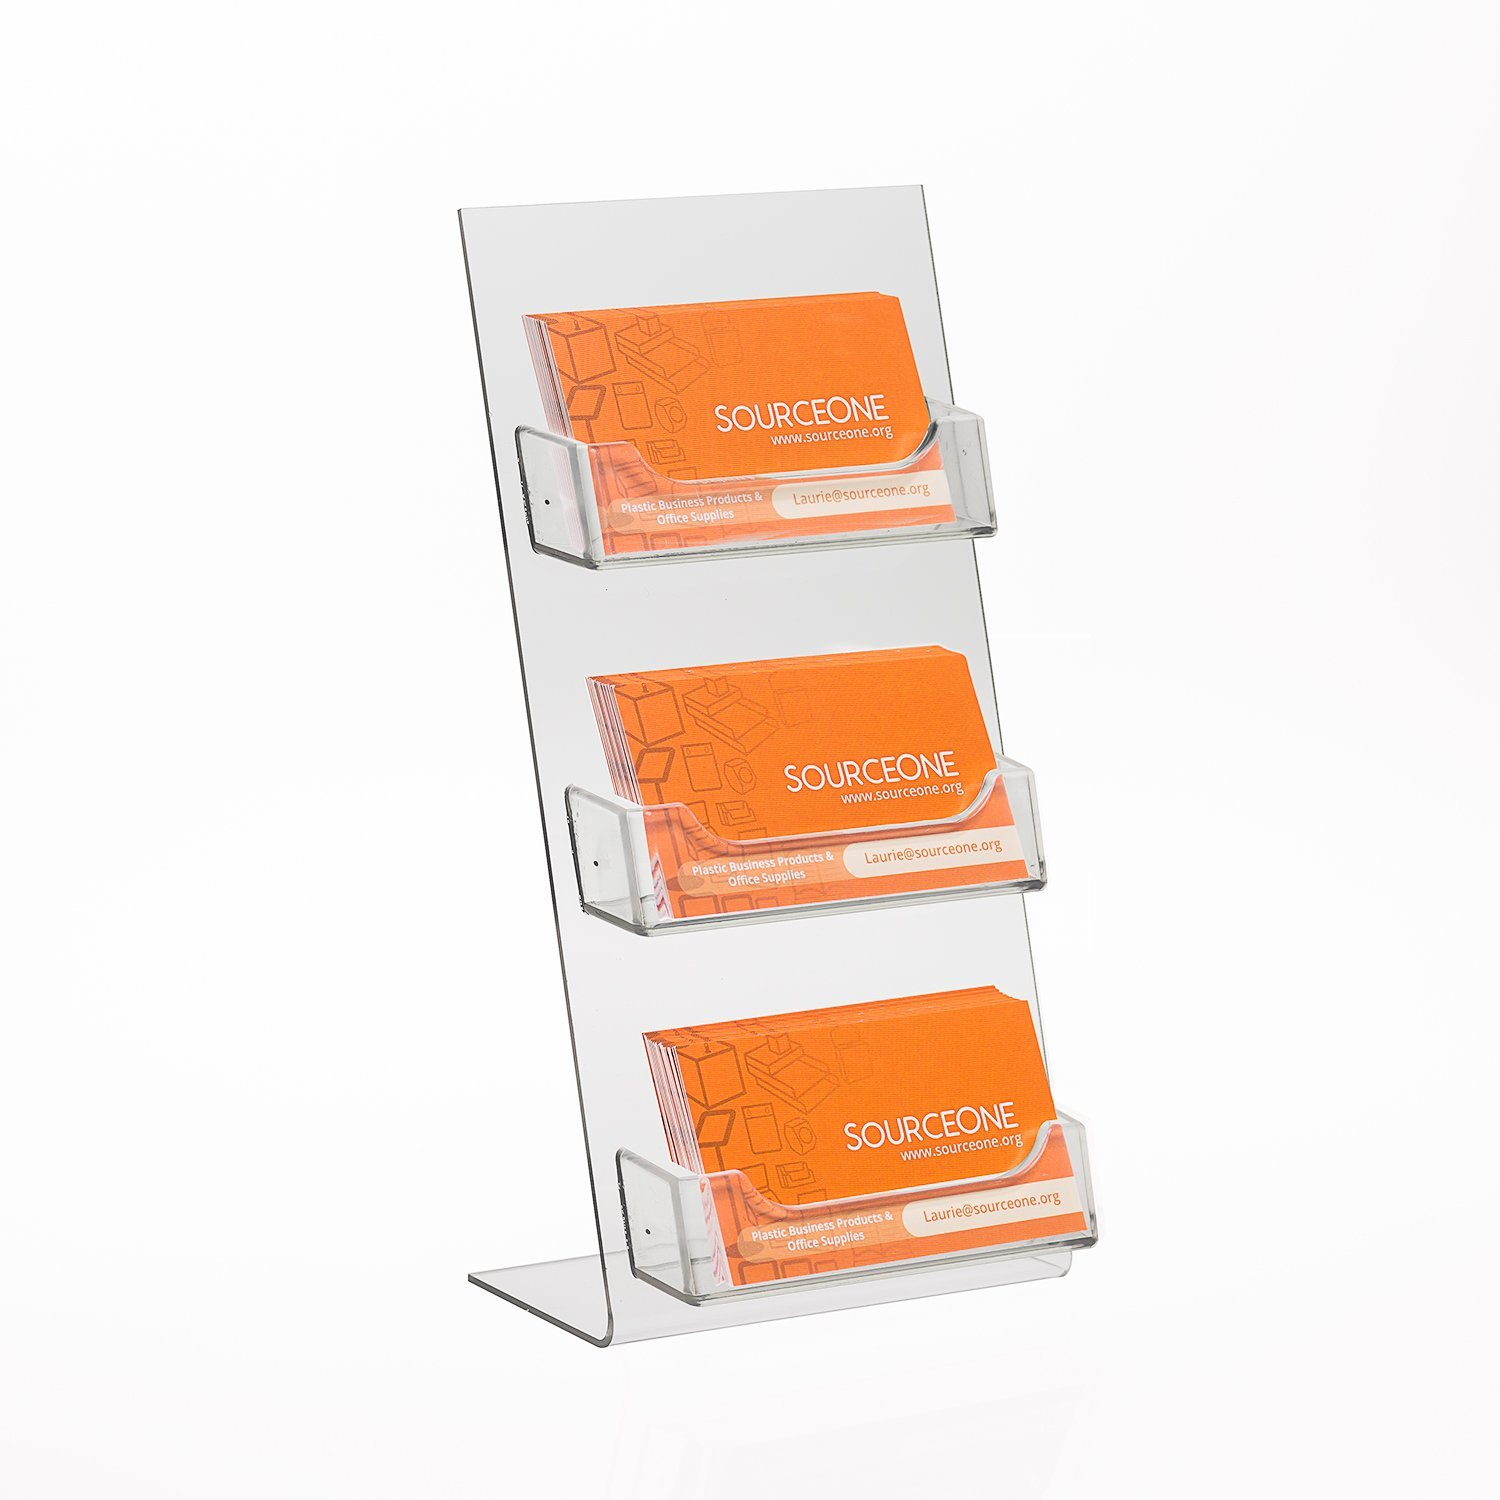 Source One Premium Counter Top Business Card Holder/Gift Card Display (1 Pack, 3 Pocket)